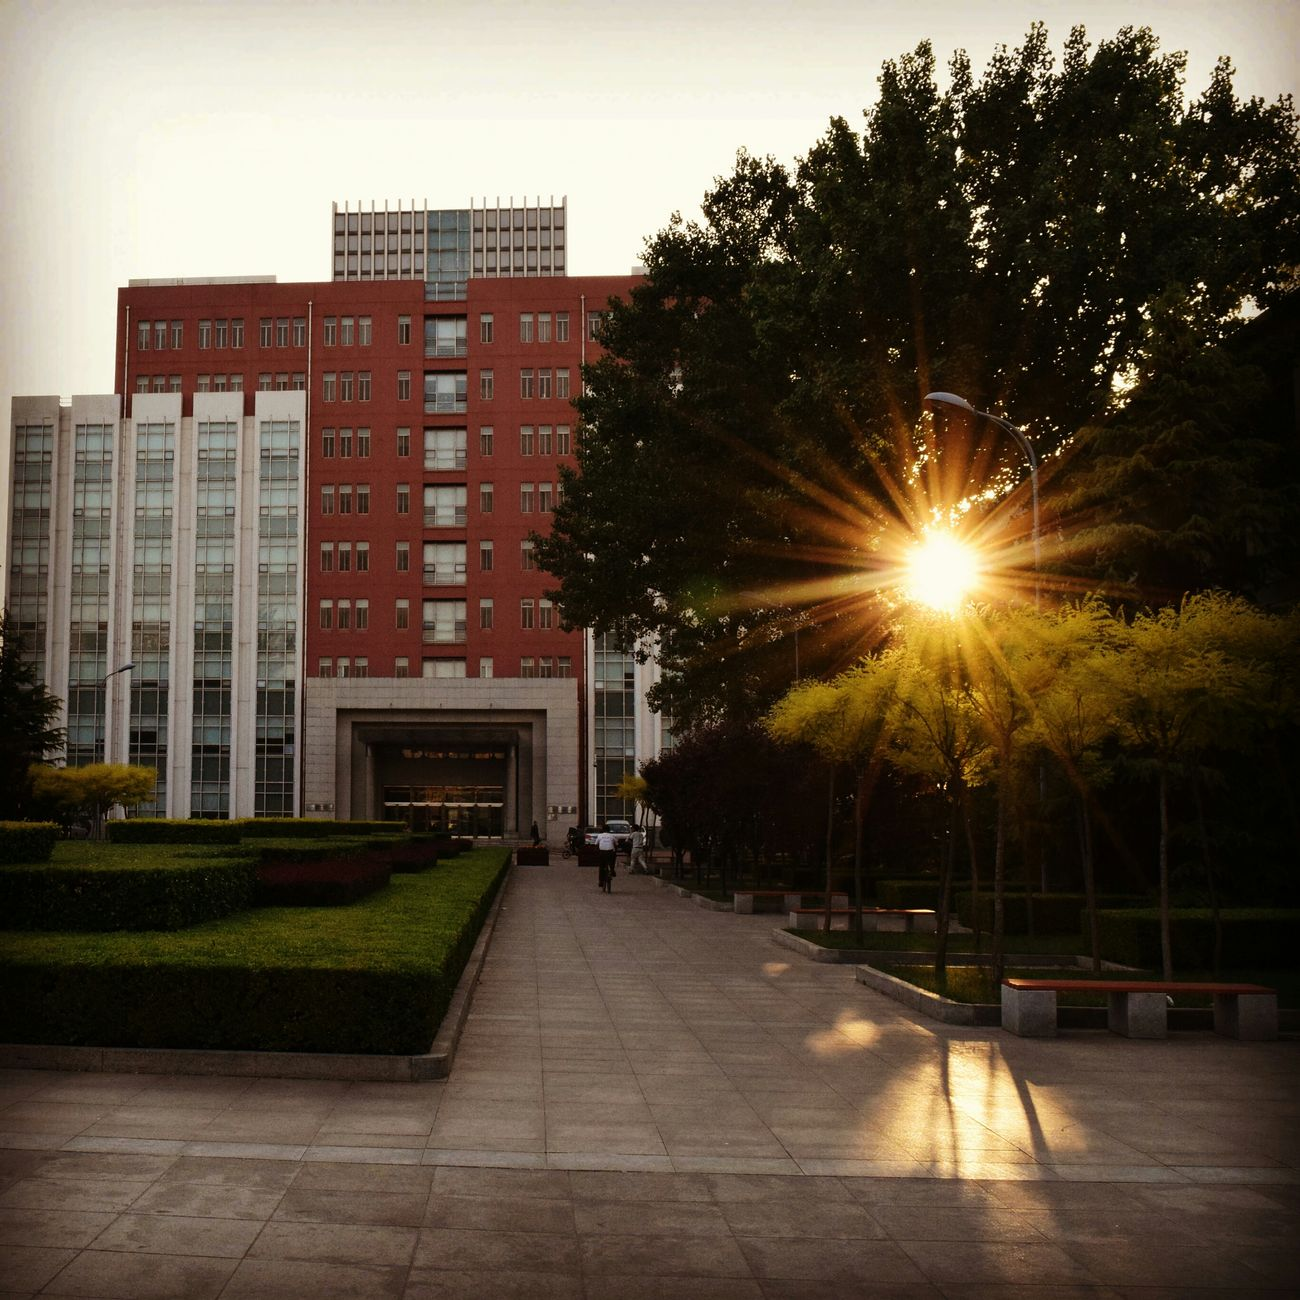 Sunset through the trees Cool Evening Summer Tianjinmedicaluniversity Tianjin China Indian Classroombuilding Nikon D5300